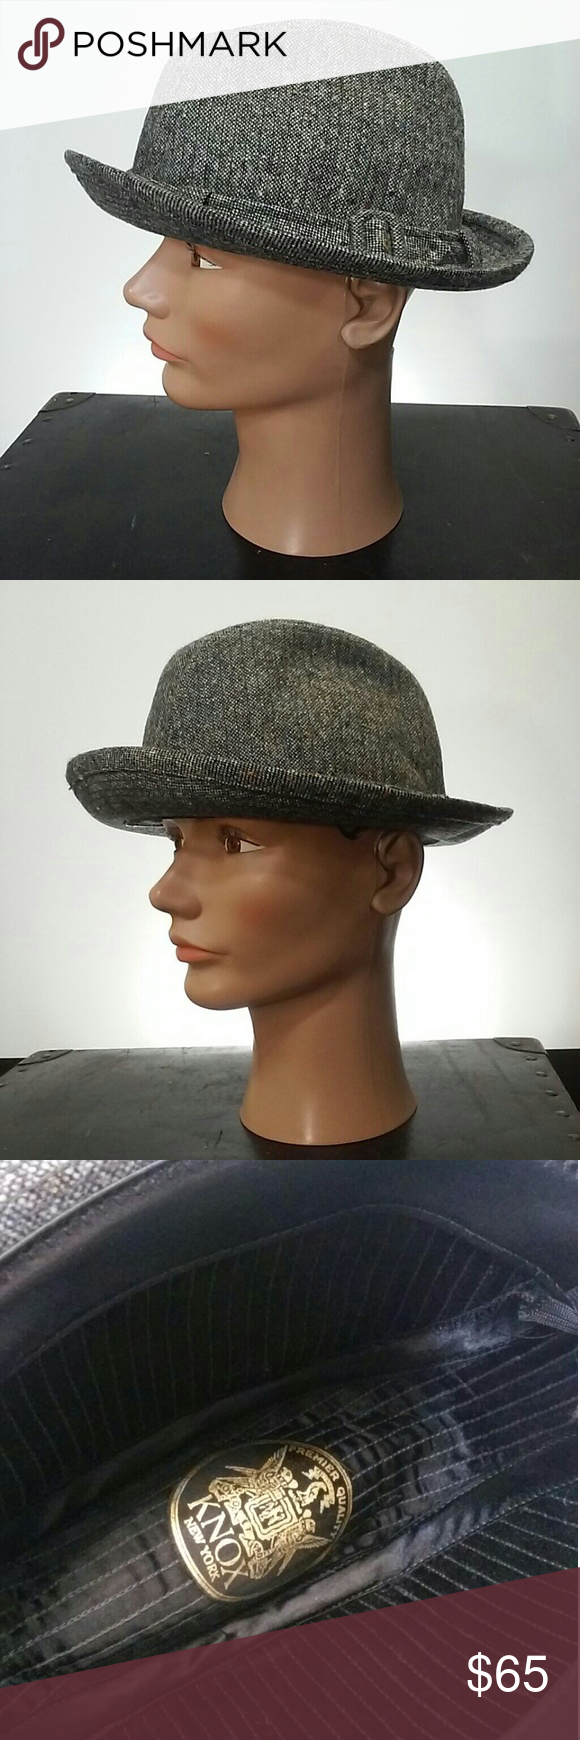 Knox Fedora Trilby Hat Tweed Wool Gangster Classic Classic style with this  Knox 9efb6b804b0